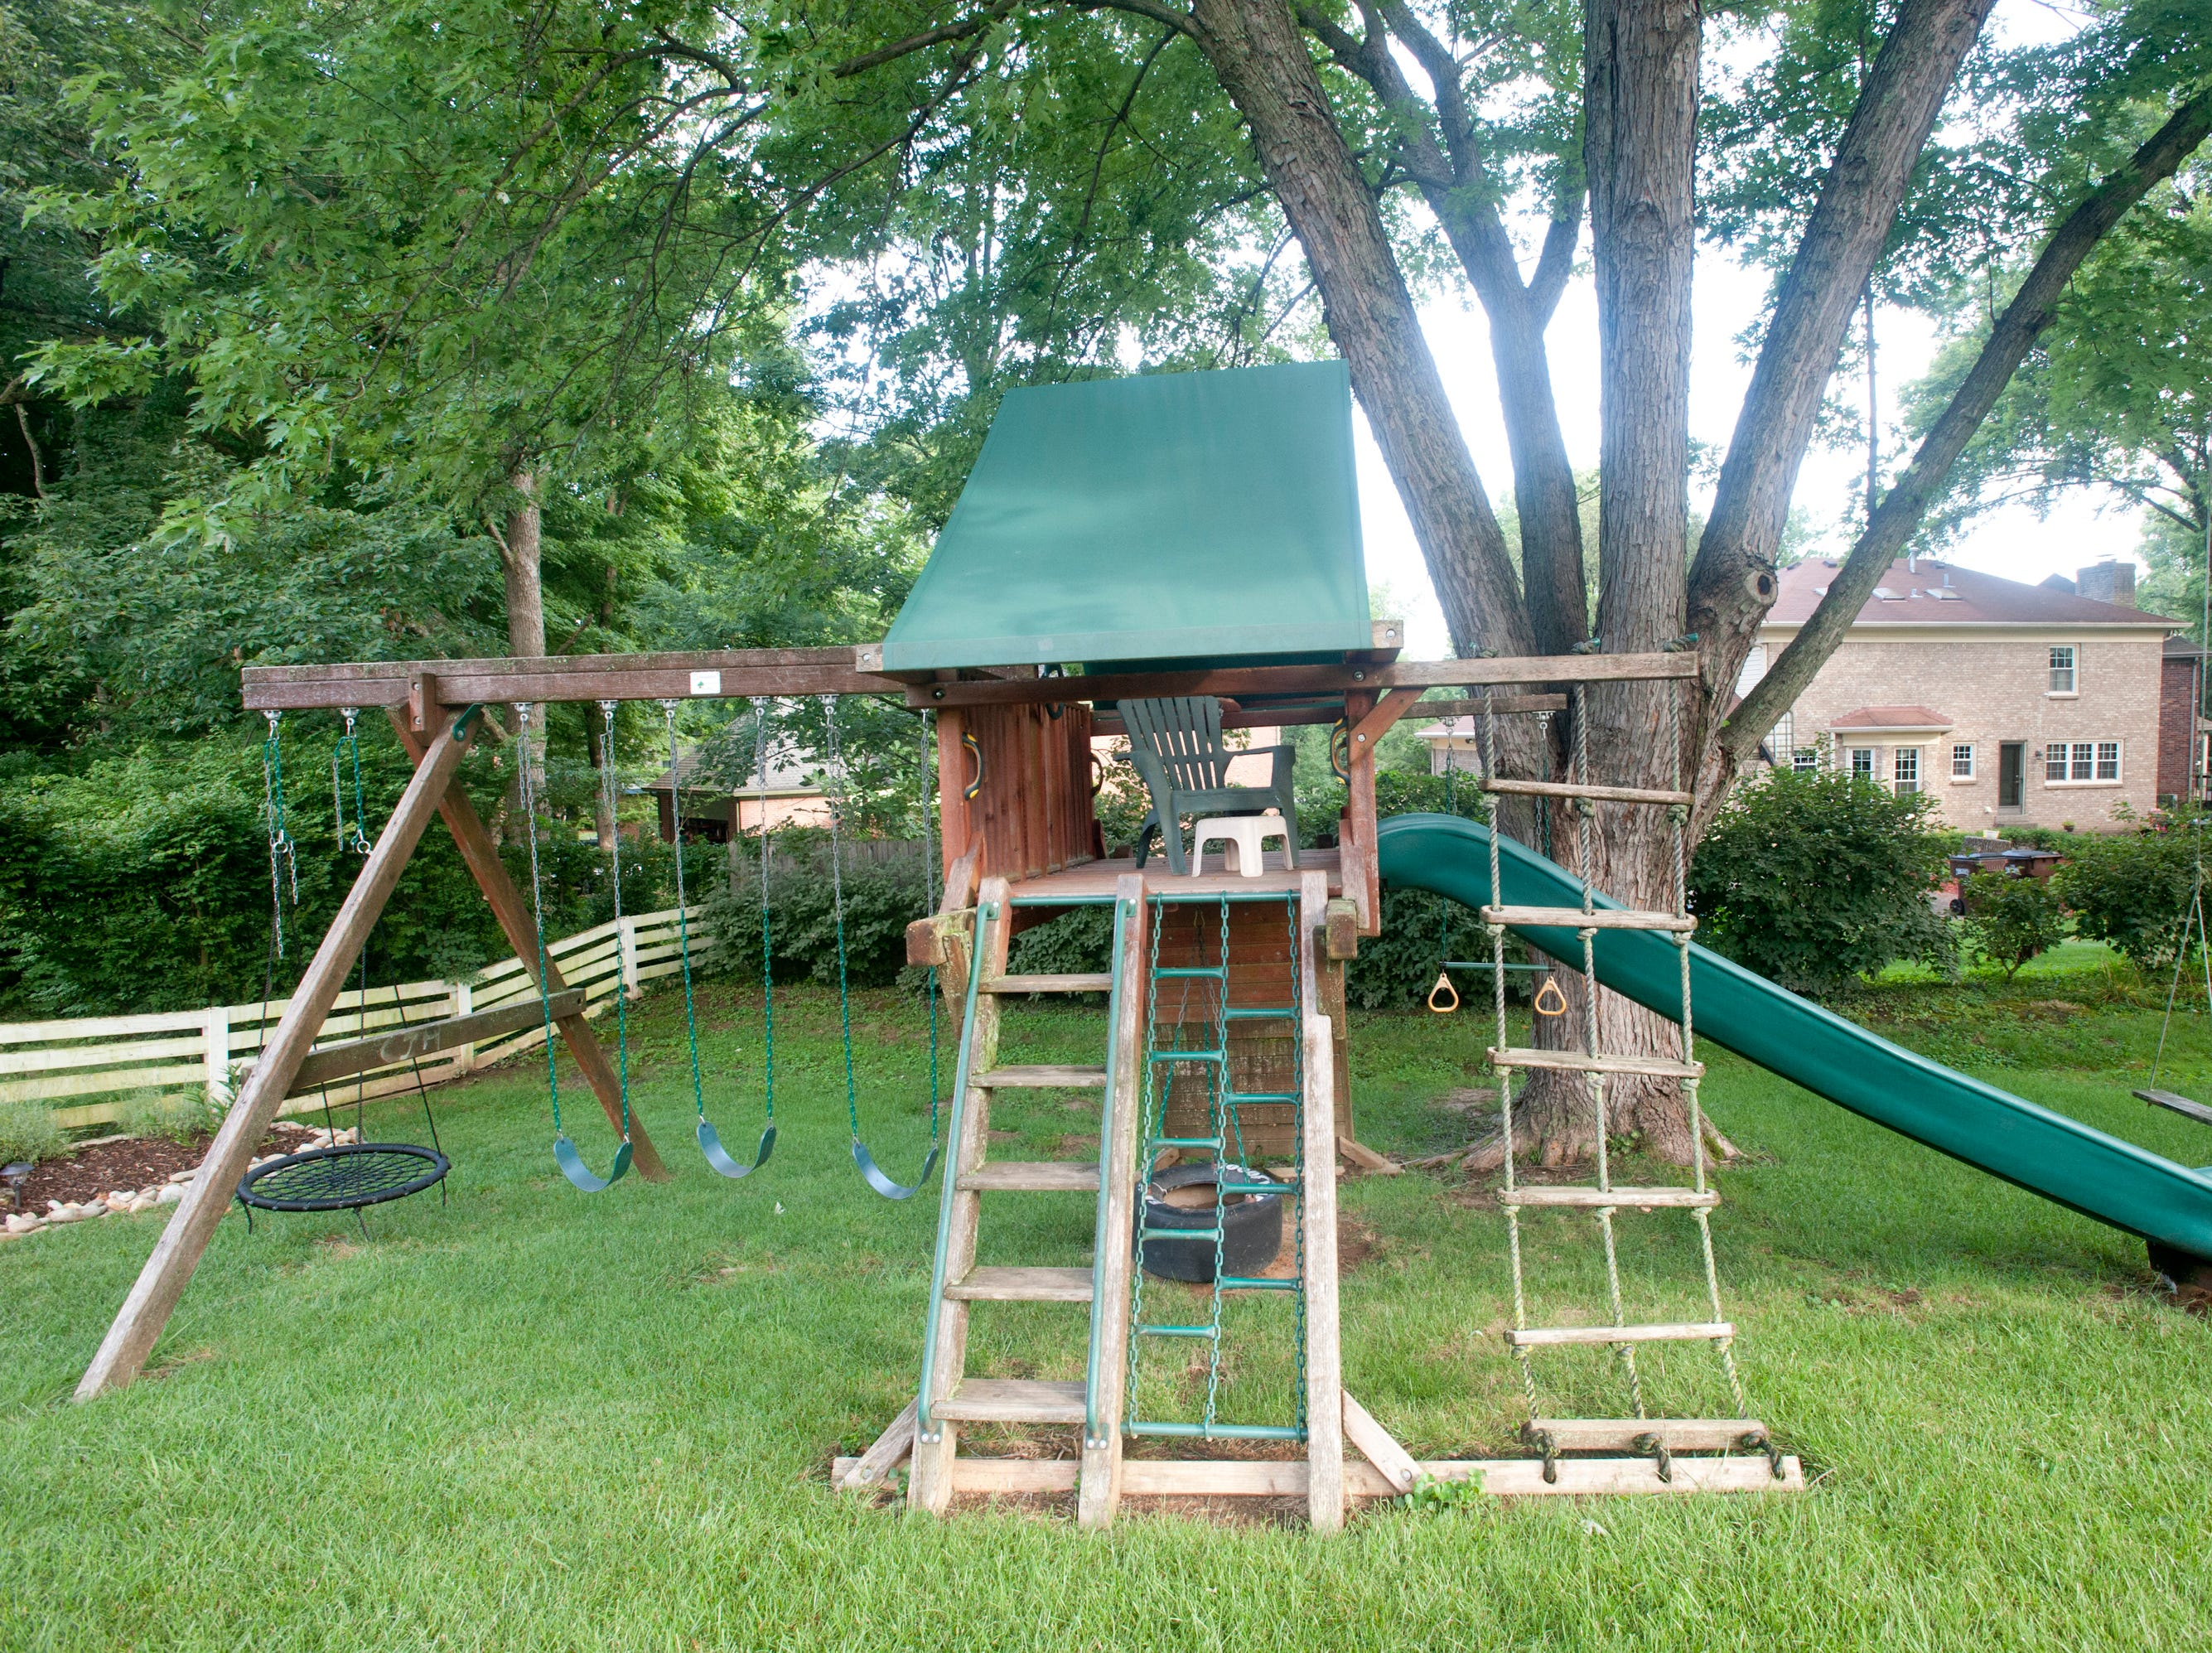 A playground set at the home of Jean Hodges.